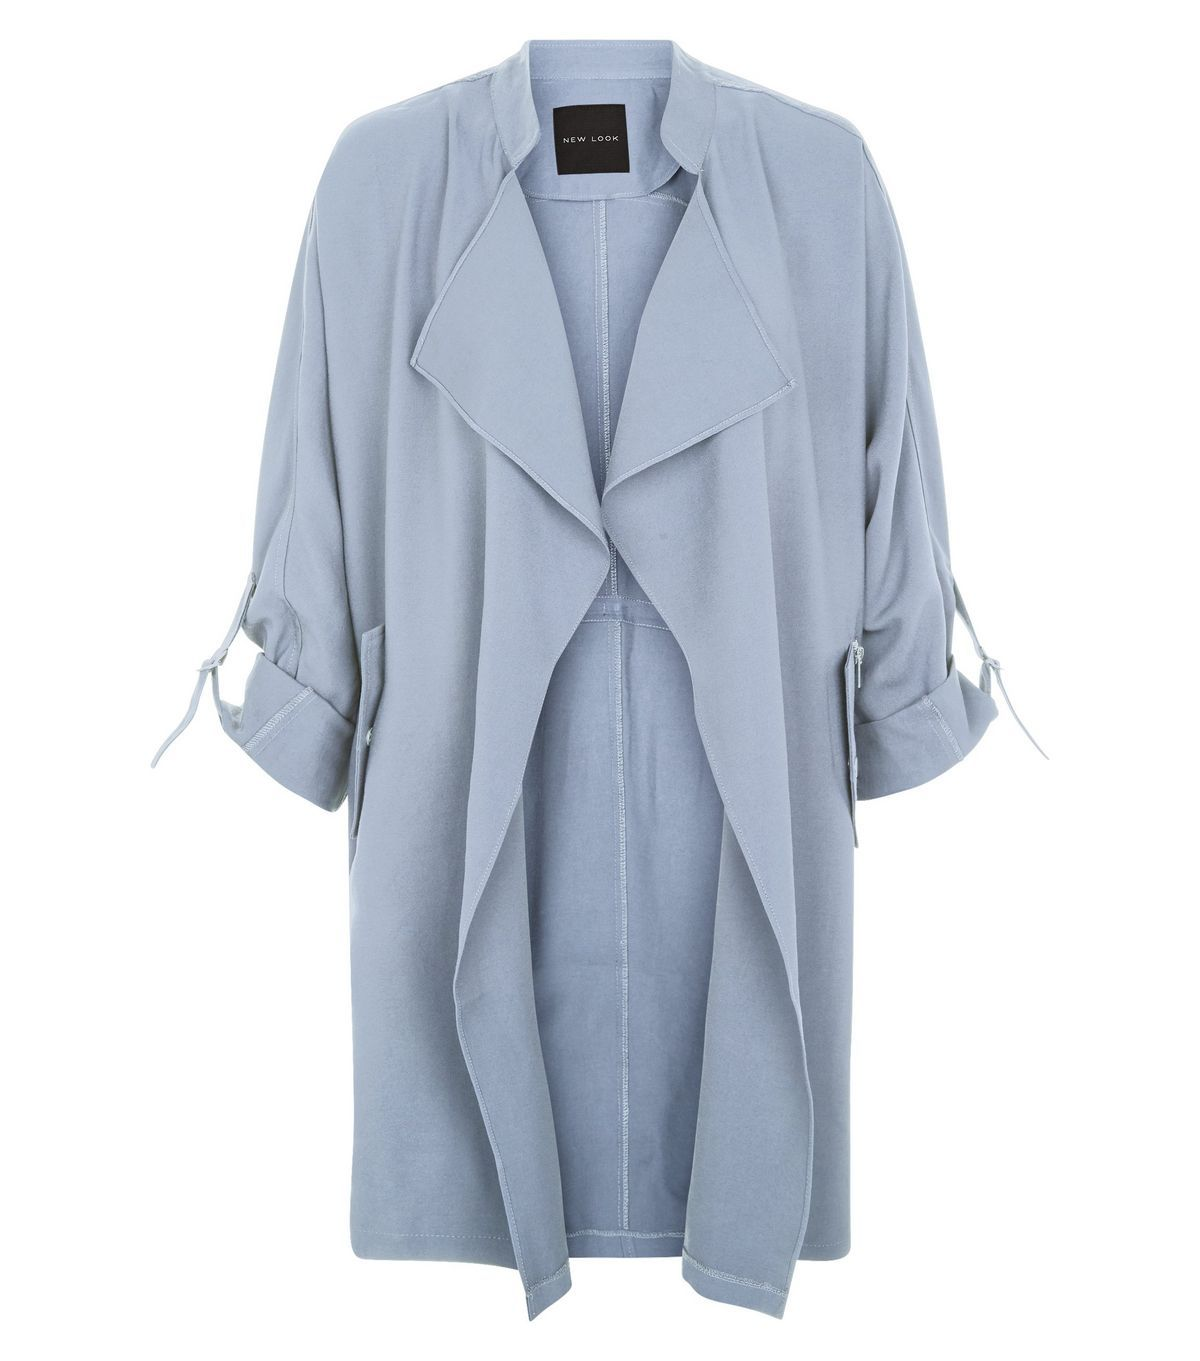 Pale Blue Waterfall Duster Coat | Dusters, Coats and Clothing